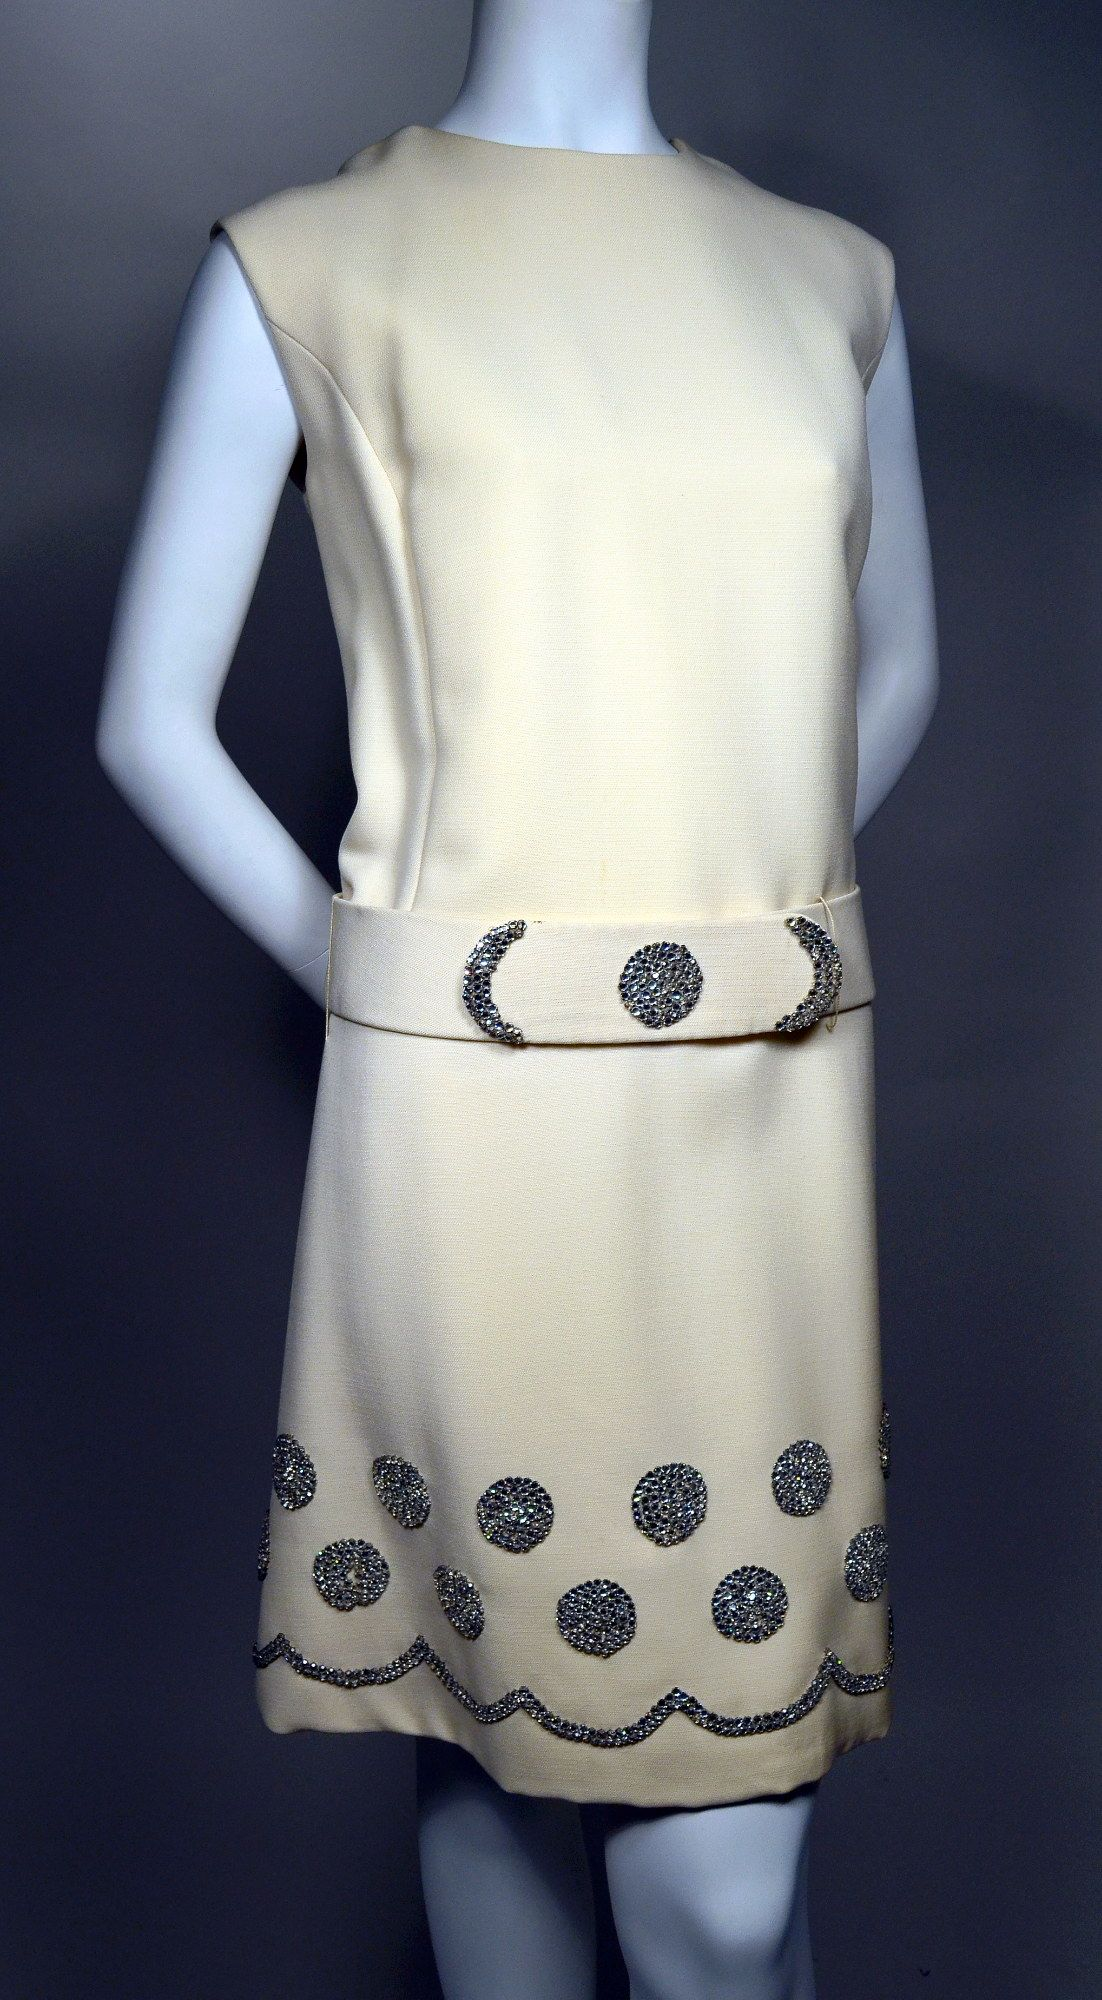 SPARKLING RHINESTONES ON CREAM COCKTAIL MINI - 1960's VINTAGE SLEEVELESS DROP WAIST SHIFT DRESS.  Available for sale at rpvintage.com.